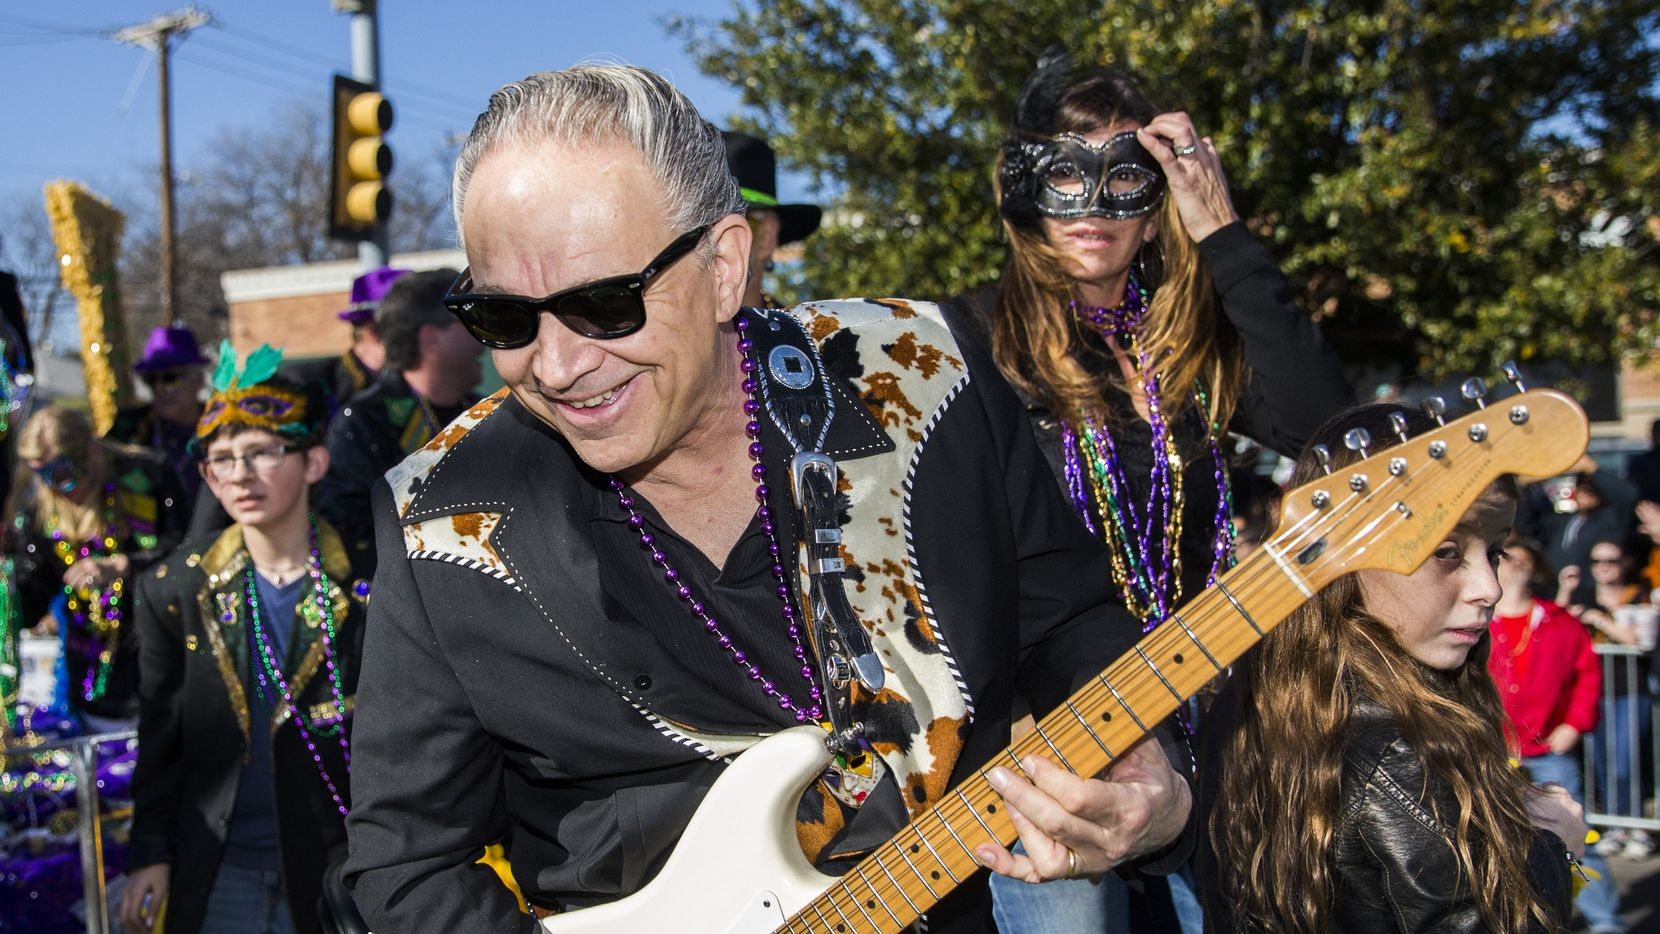 Jimmie Vaughan played guitar on a float during the annual Oak Cliff Mardi Gras parade in 2016. Vaughan said Tuesday he'd tested negative for COVID-19.